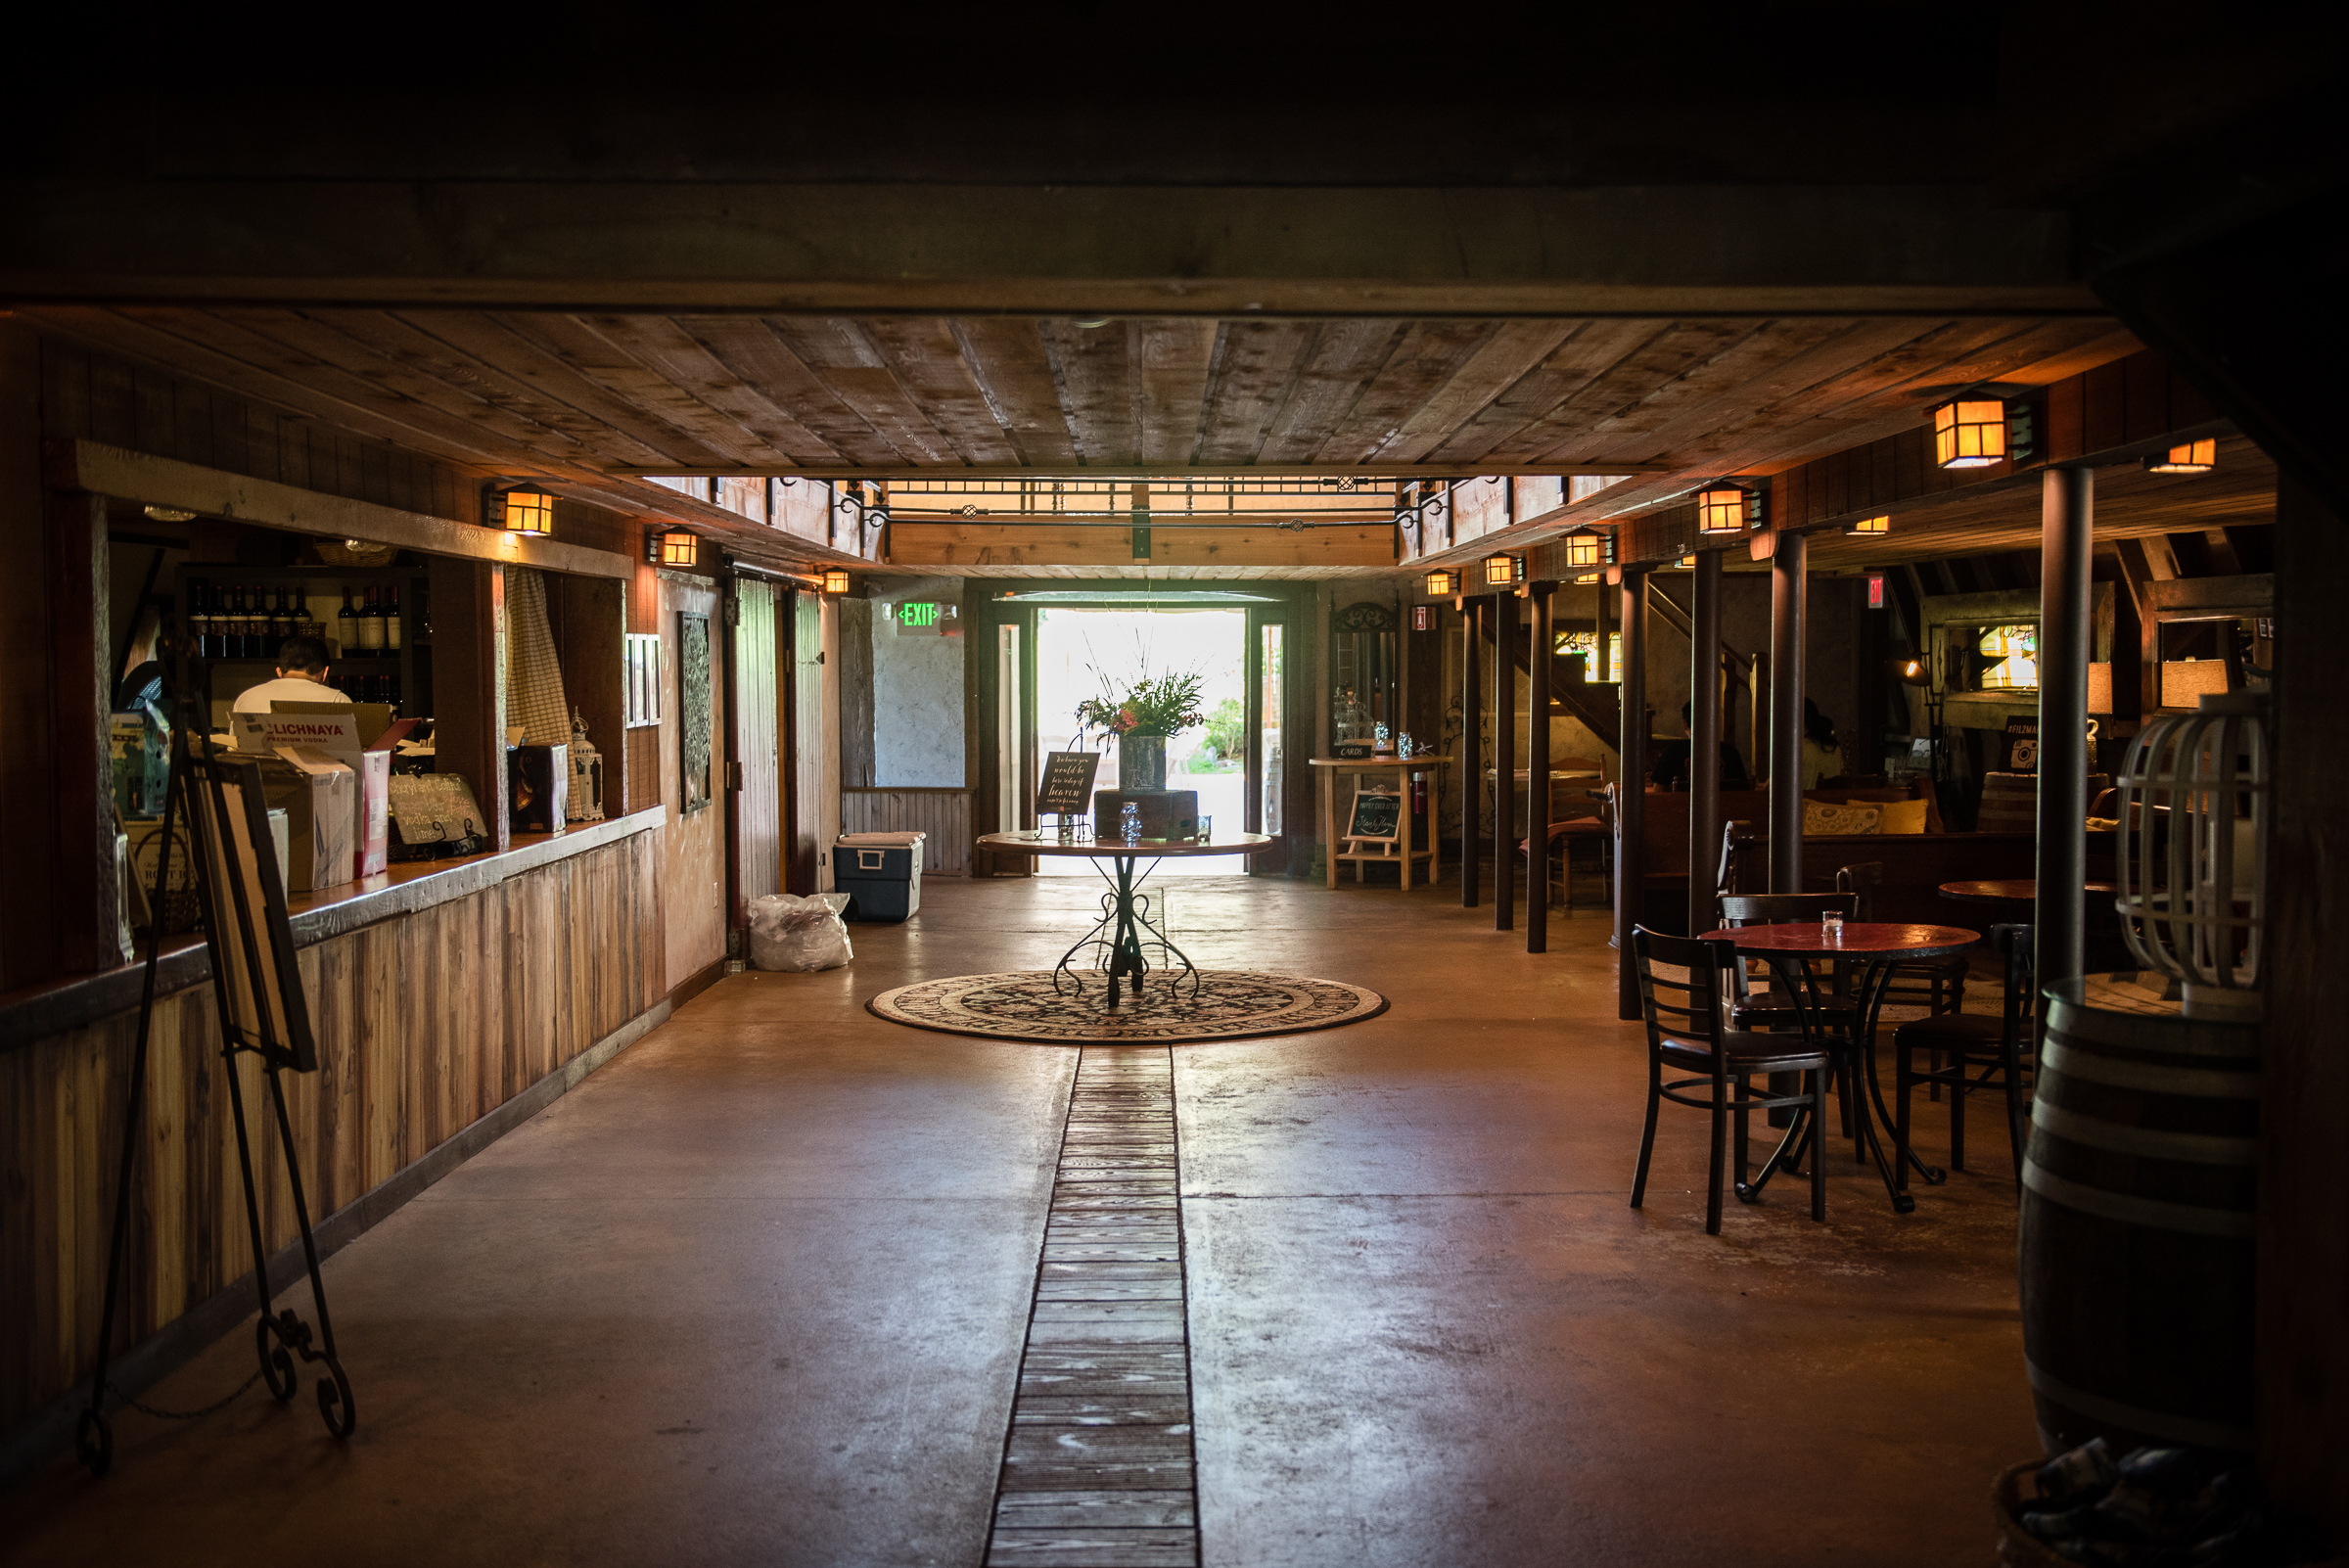 inside main building - front of bar and entrance to reception space